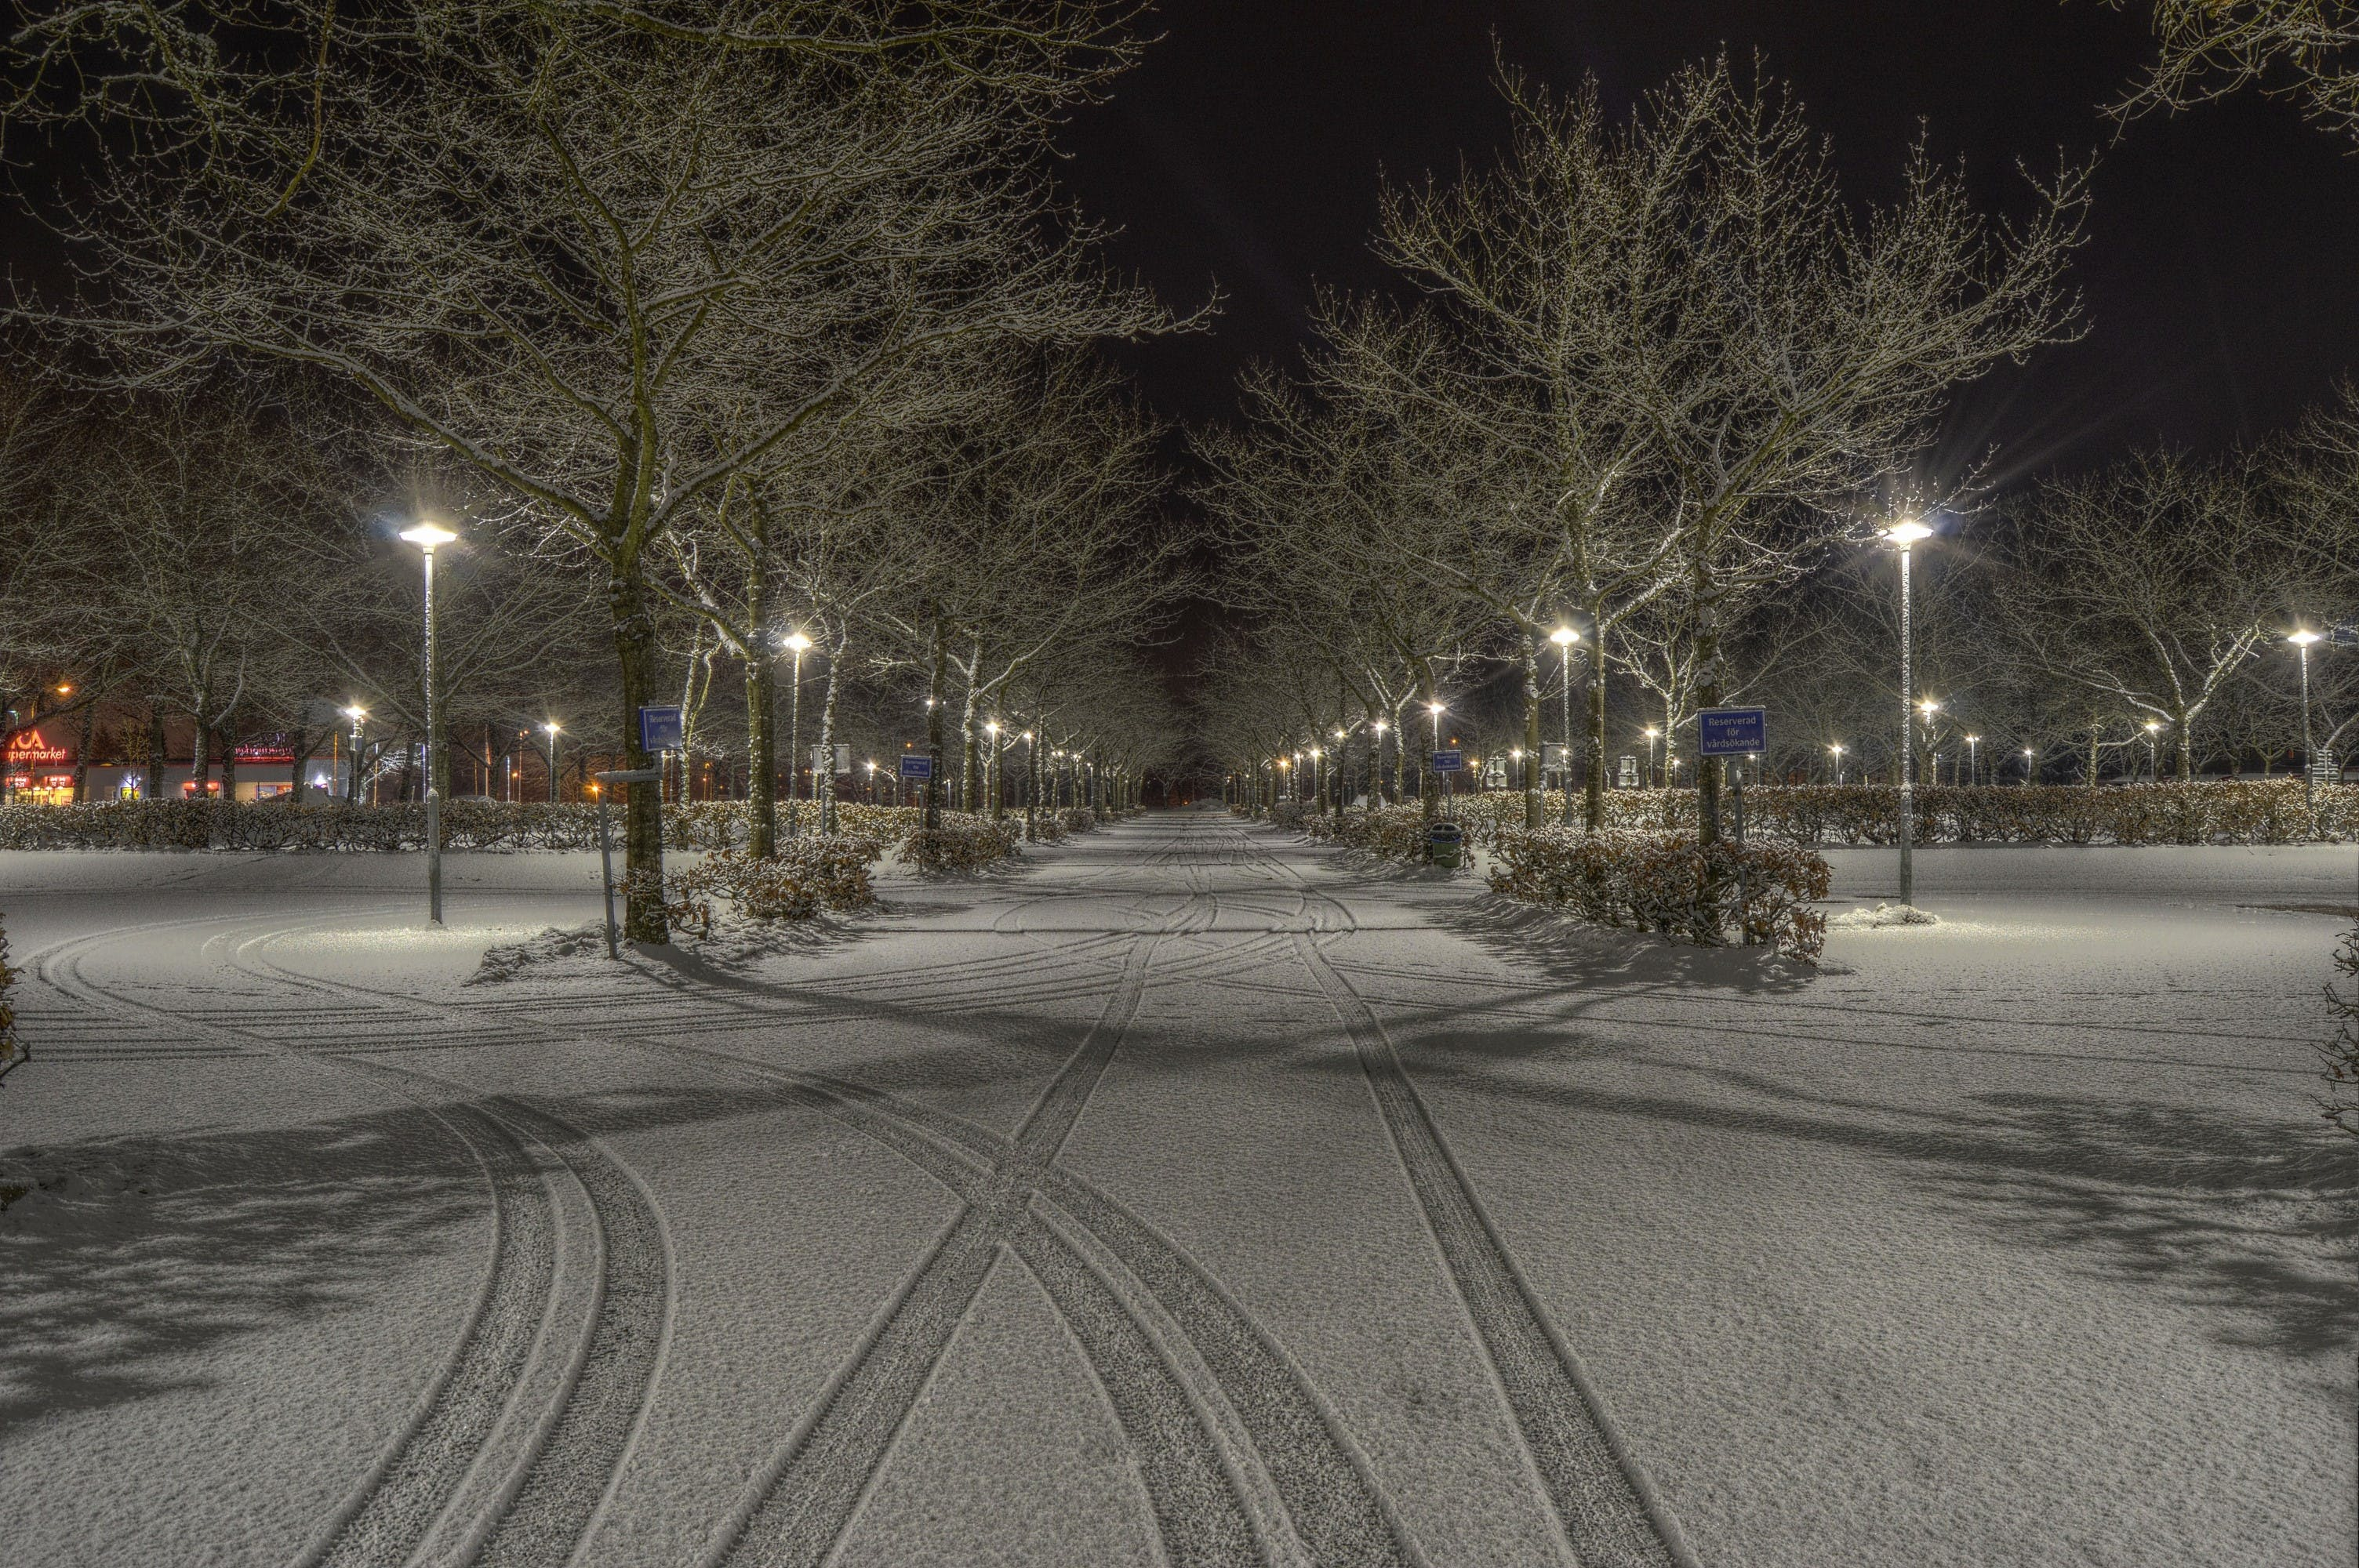 Cleared Road Near Trees and Light Post during Nighttime